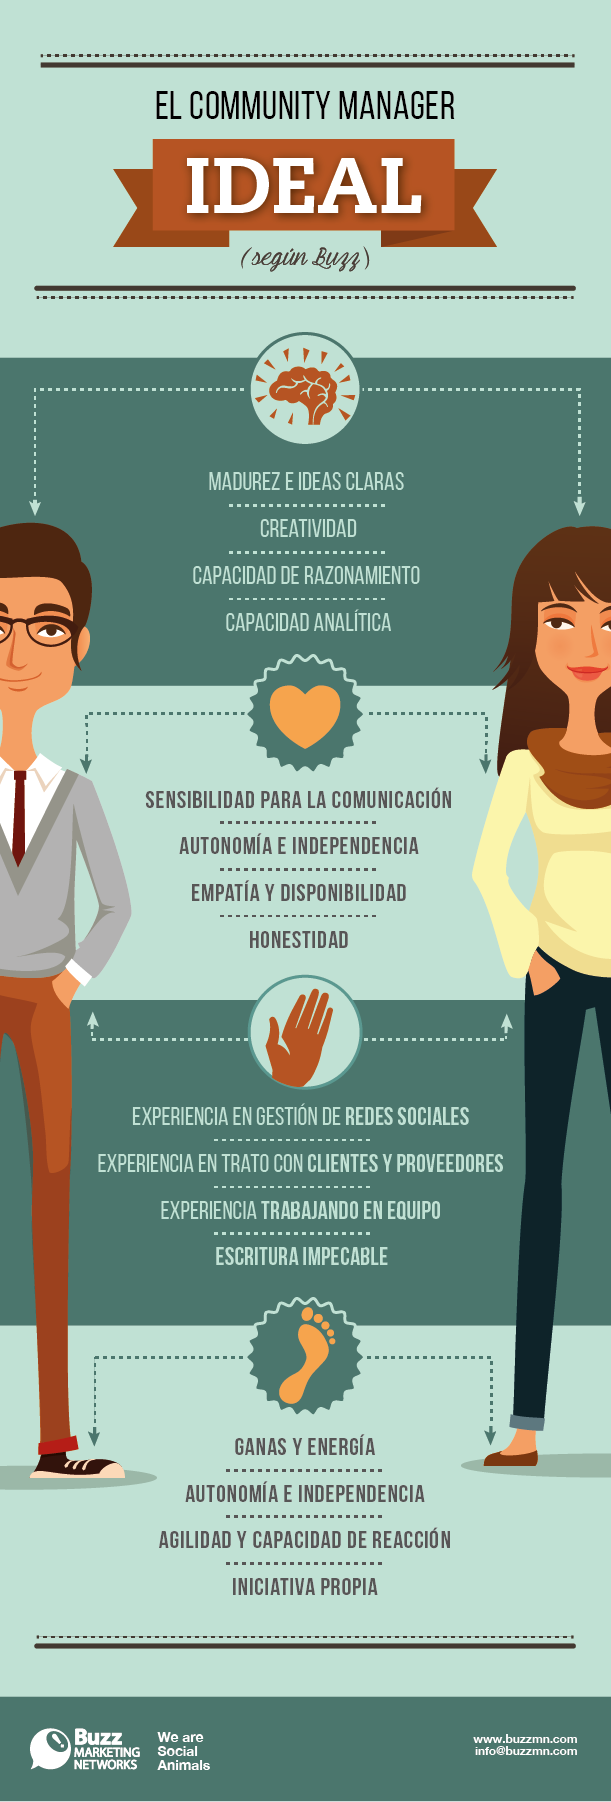 infografia_community-manager_ideal (1)